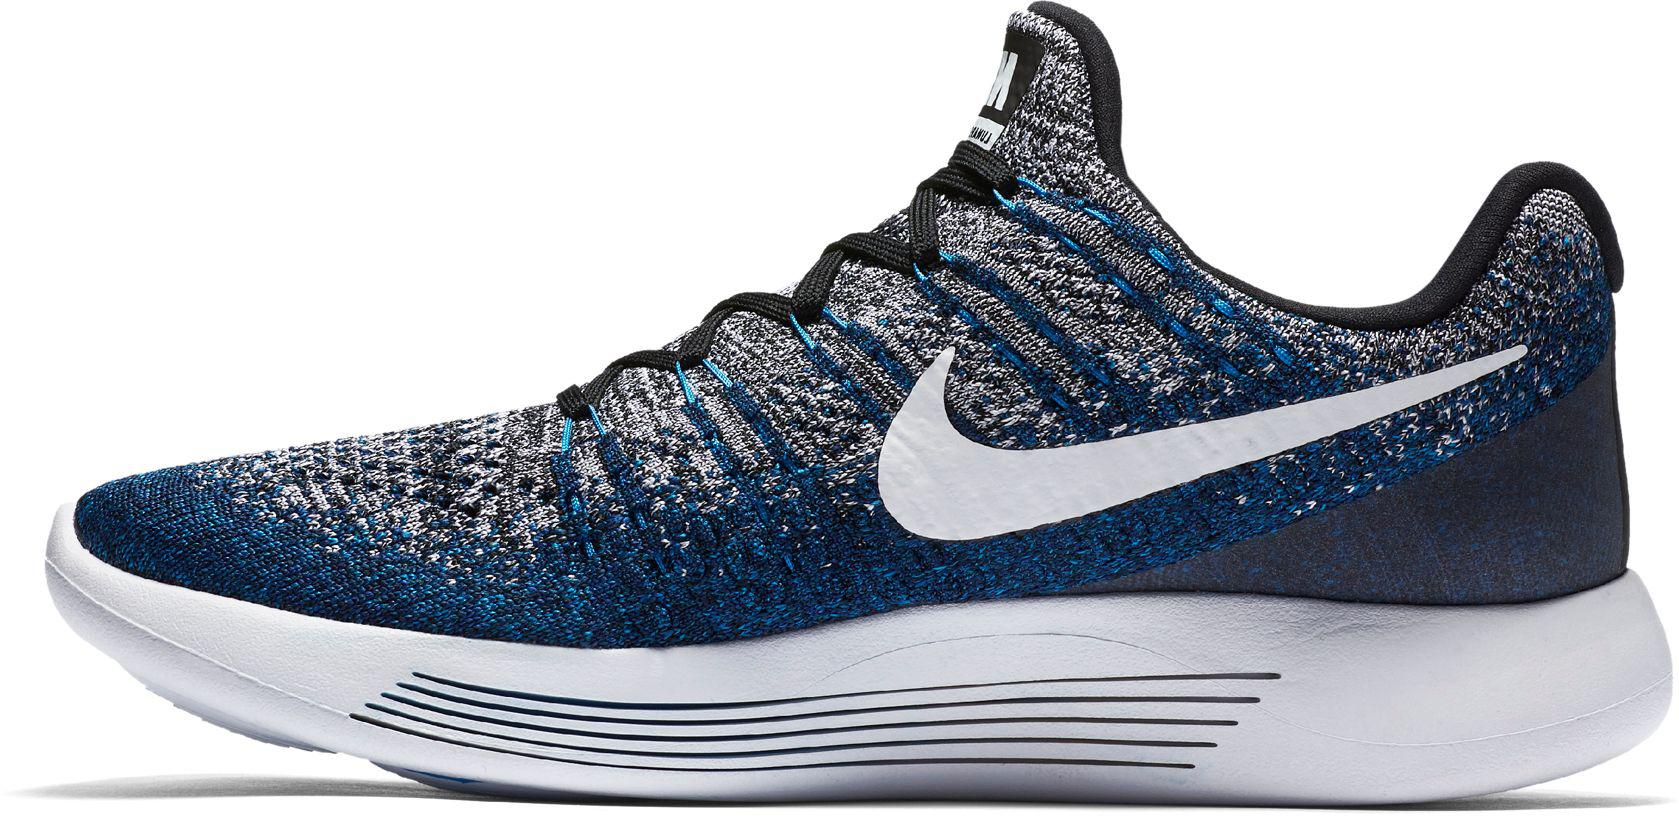 02b5ff2300a5 Lyst - Nike Lunarepic Low Flyknit 2 Running Shoes in Blue for Men